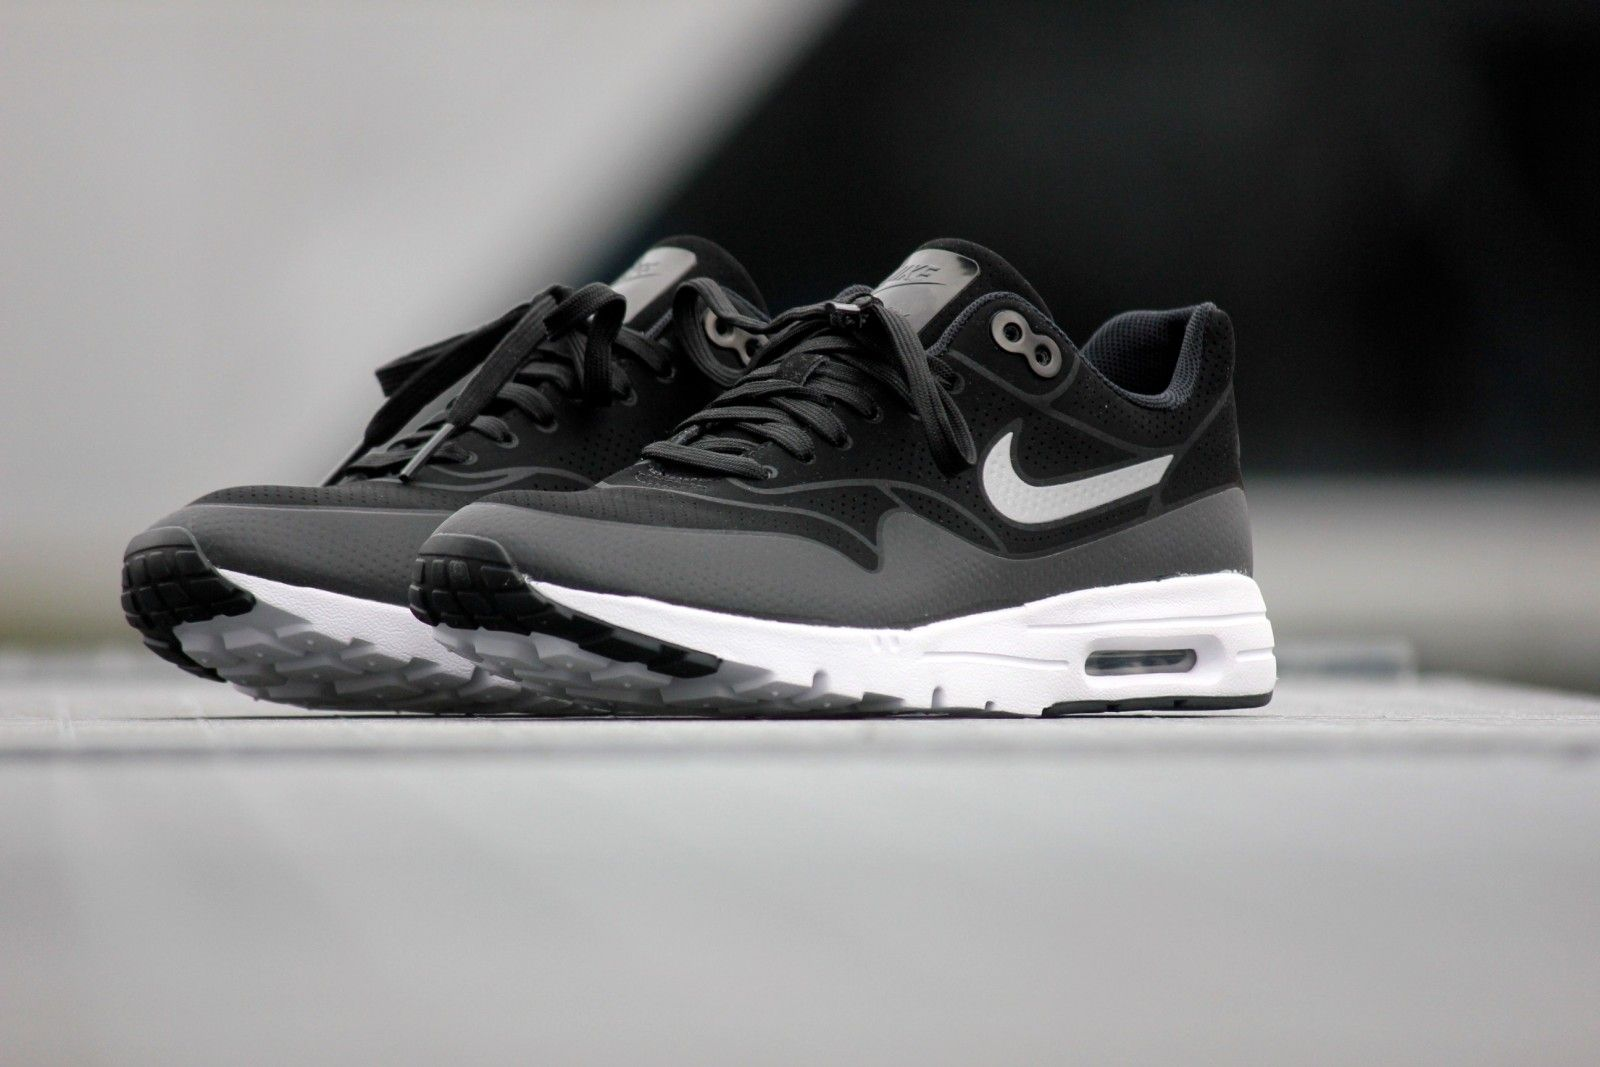 NIKE AIR MAX 1 ULTRA MOIRE Game Black/Metallic Silver/White/Blac